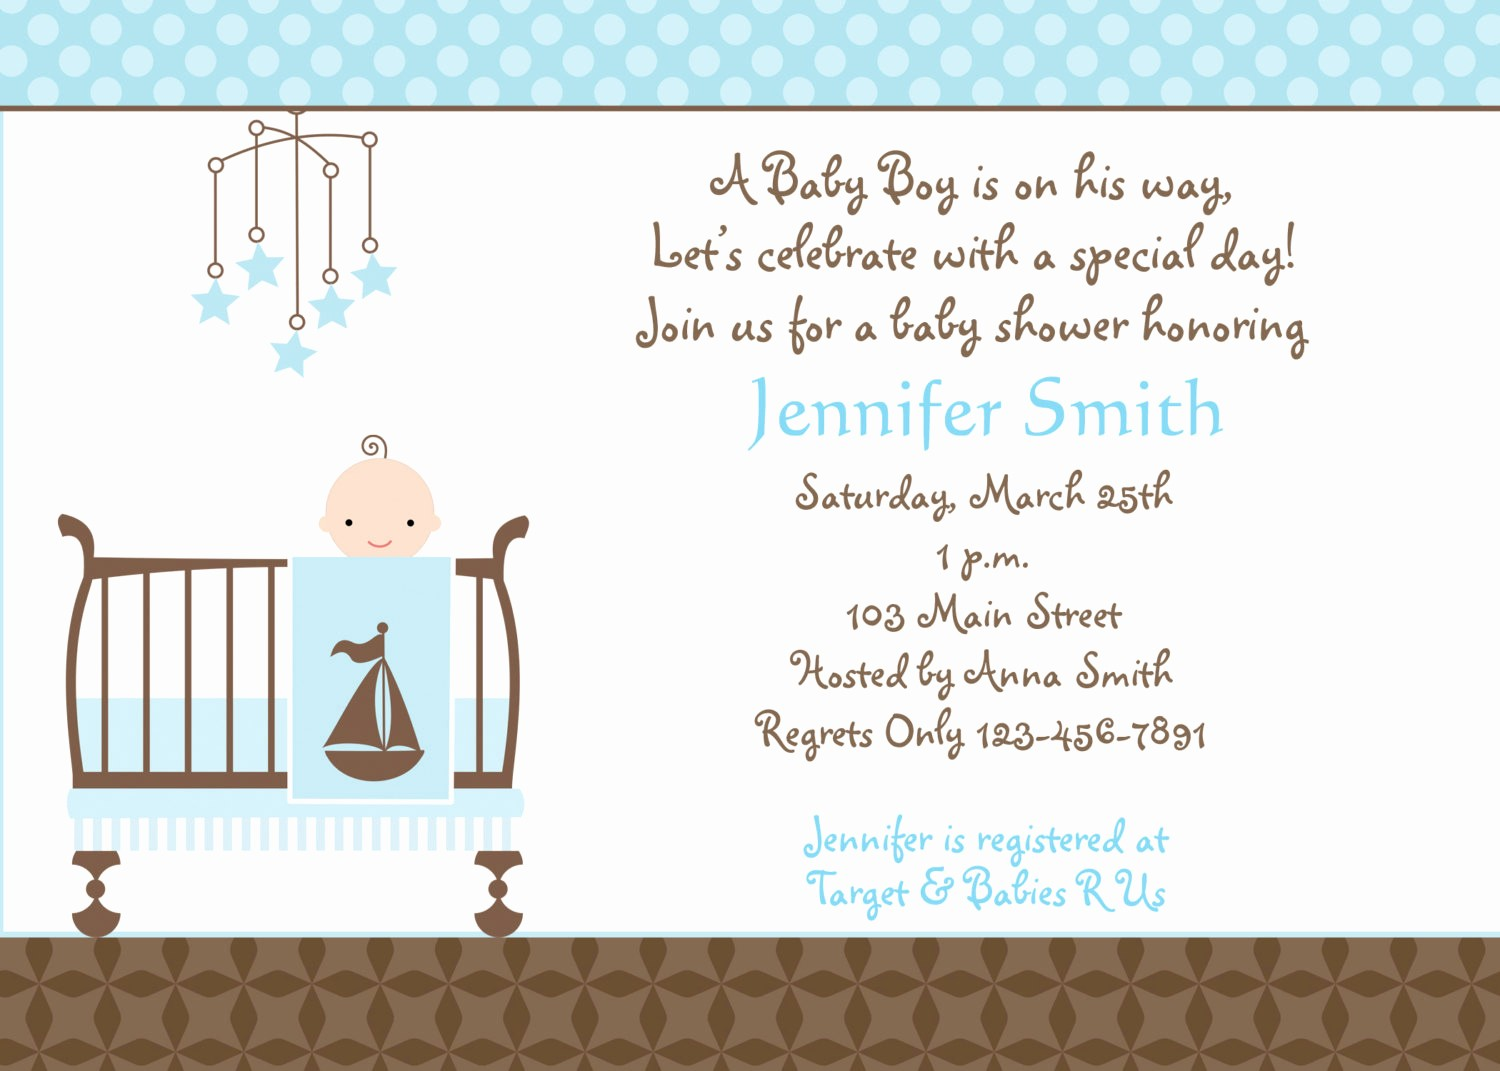 Baby Boy Announcements Free Templates Fresh Free Baby Boy Shower Invitations Templates Baby Boy